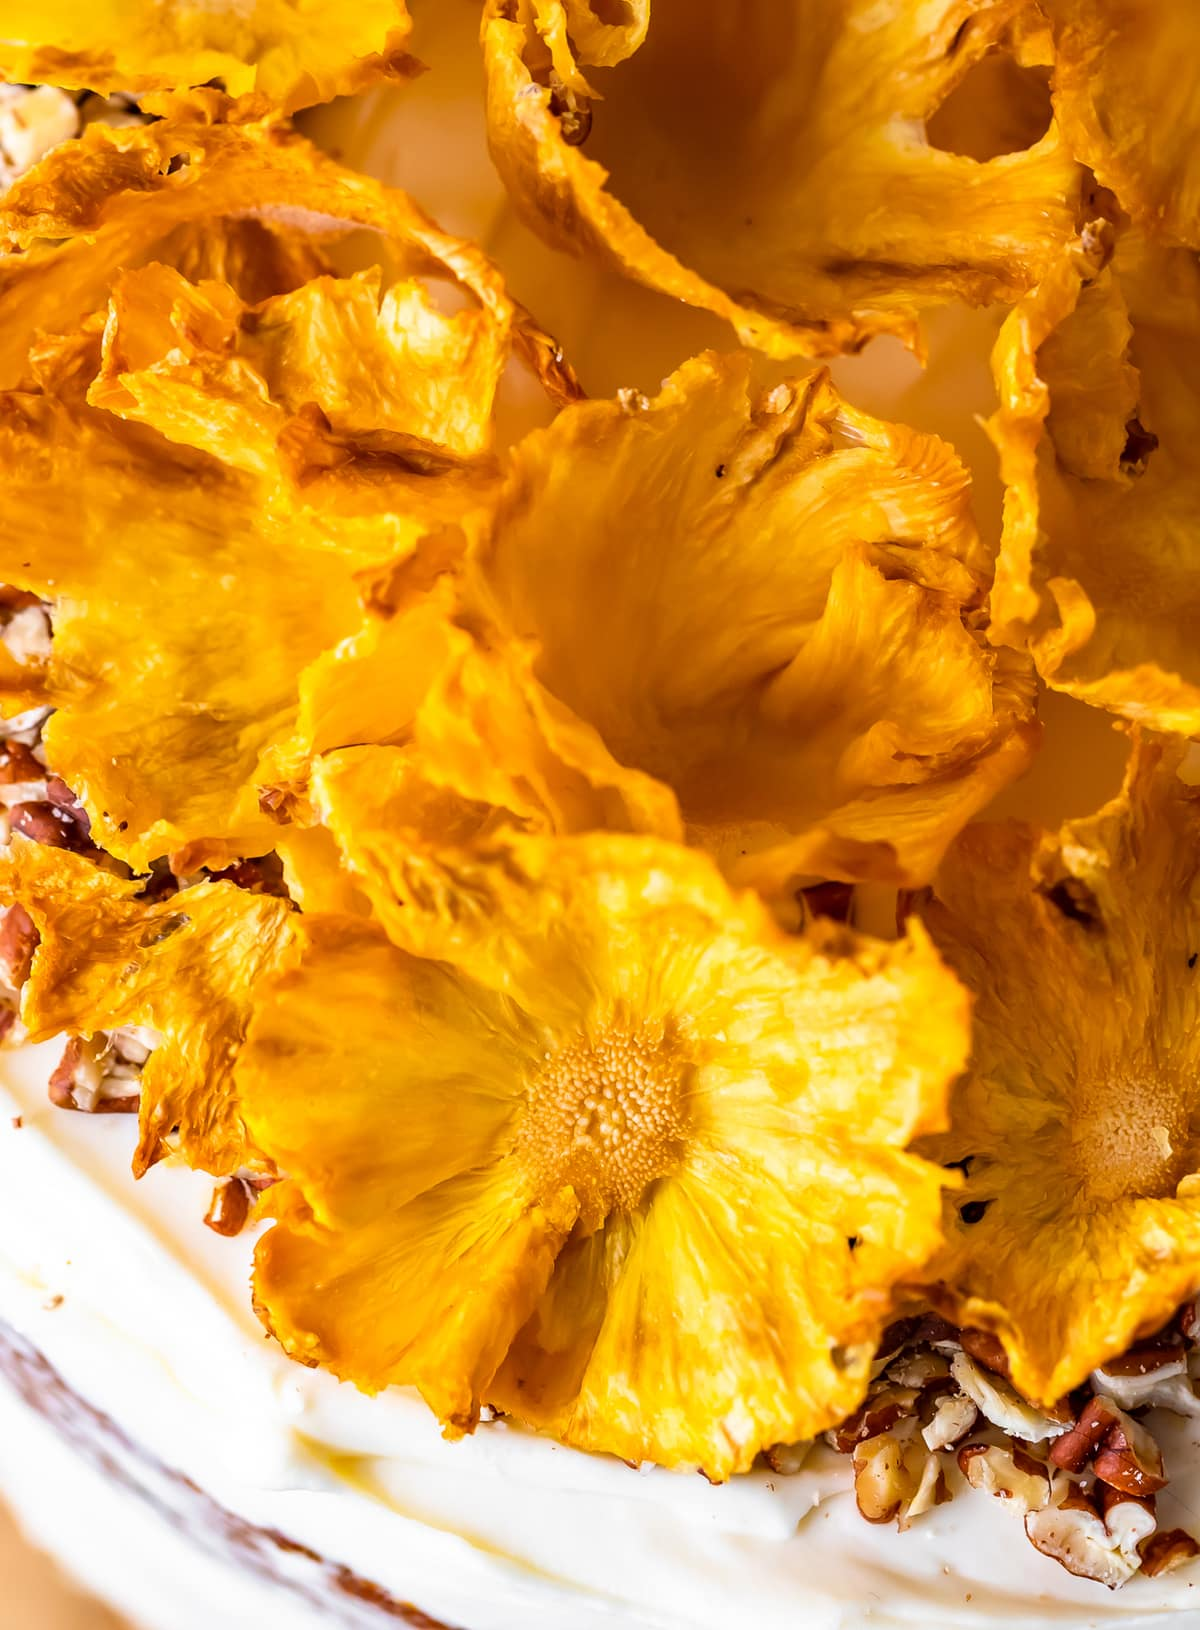 close up on dried pineapple flowers